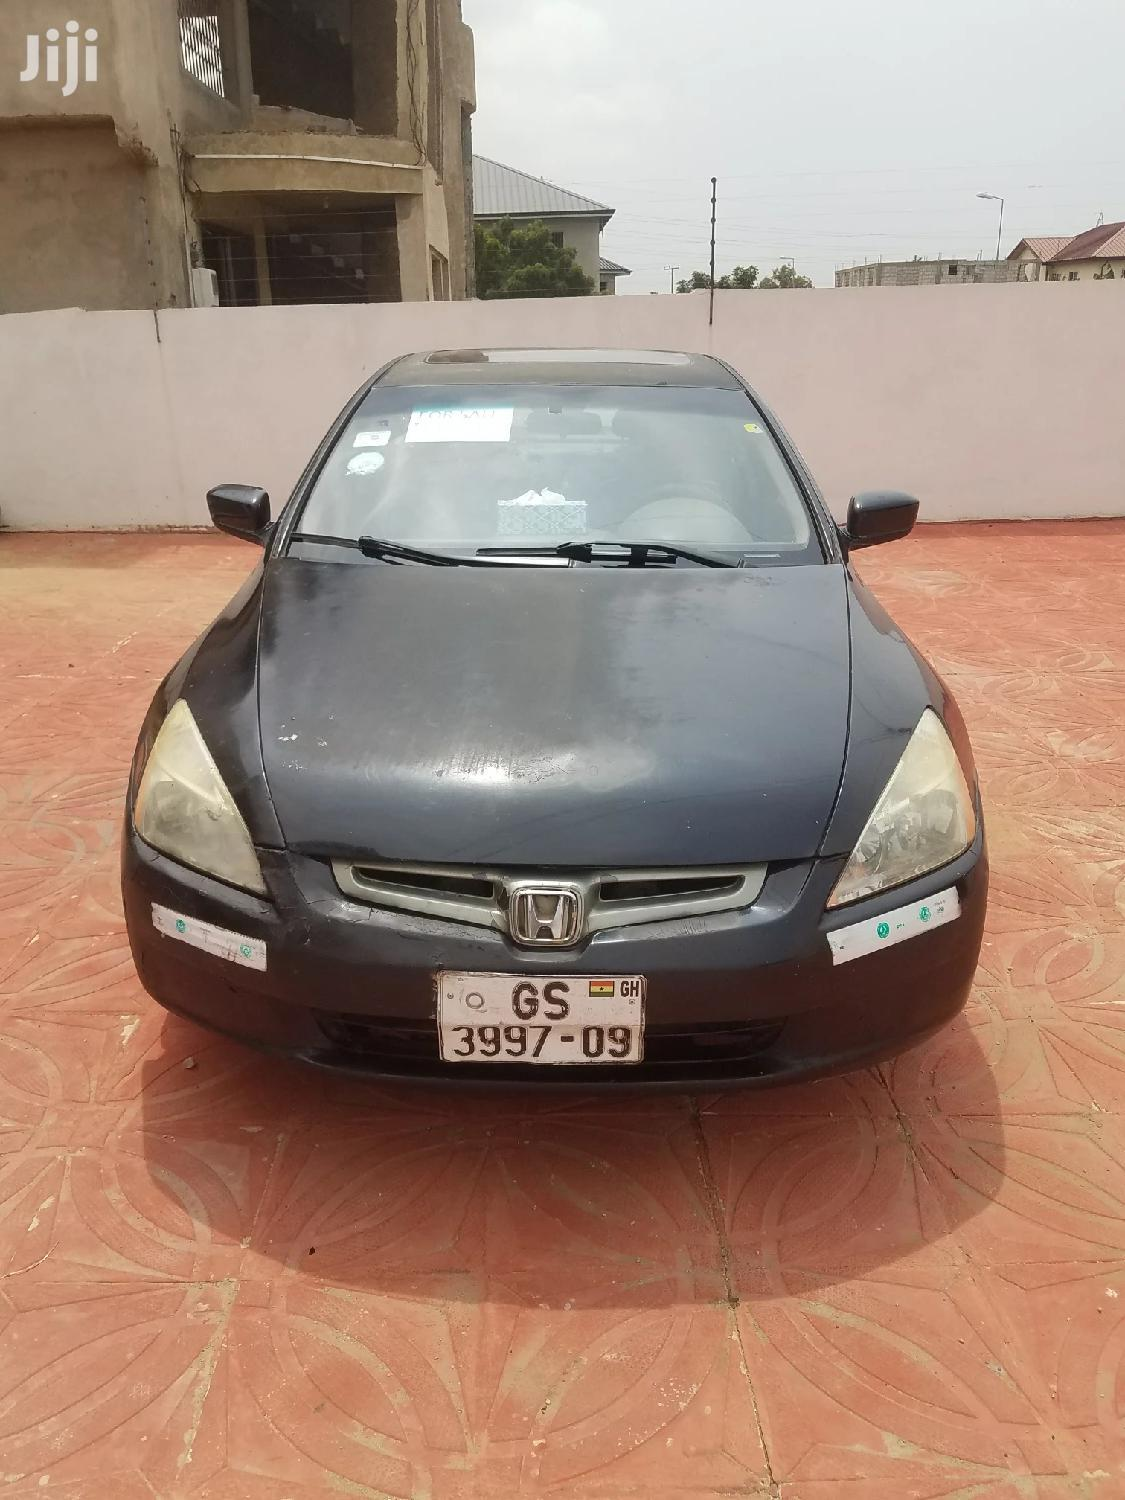 Honda Accord 2005 Automatic Black | Cars for sale in Ashaiman Municipal, Greater Accra, Ghana